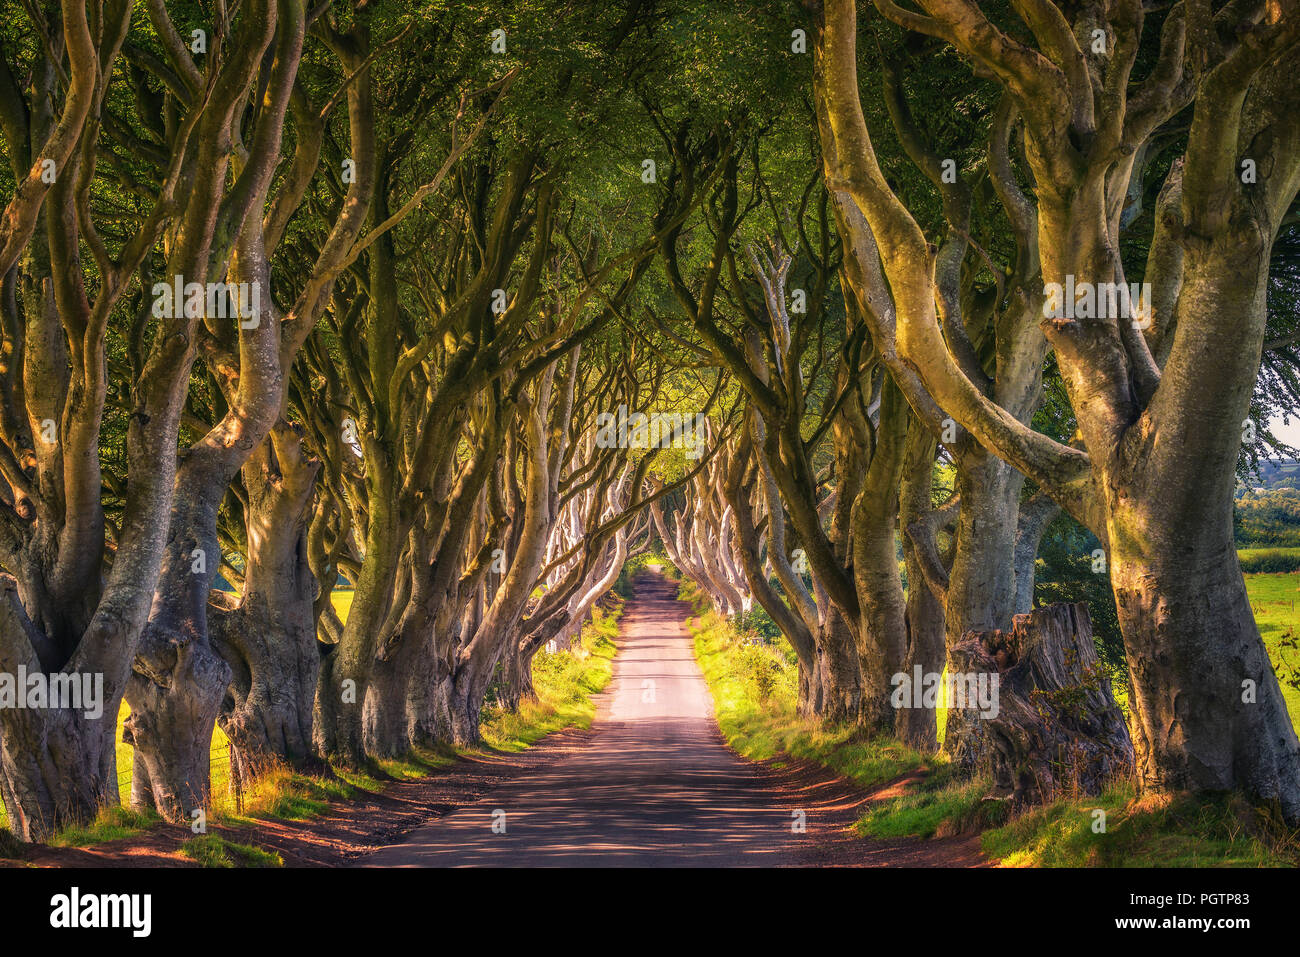 The Dark Hedges in Northern Ireland at sunset - Stock Image